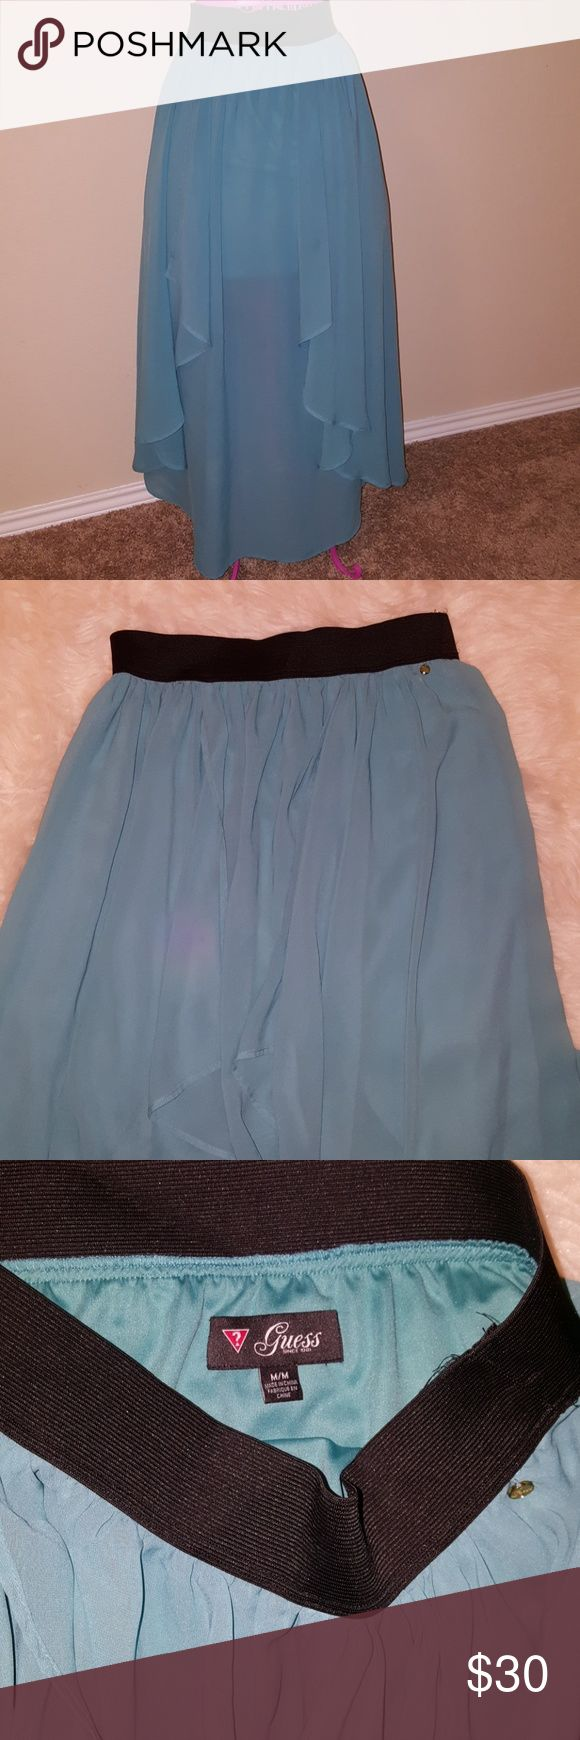 Guess maxi skirt Blue long and flowing maxi skirt  Has mini skirt and the rest is a sheer fabric Perfect for spring Guess Skirts Maxi